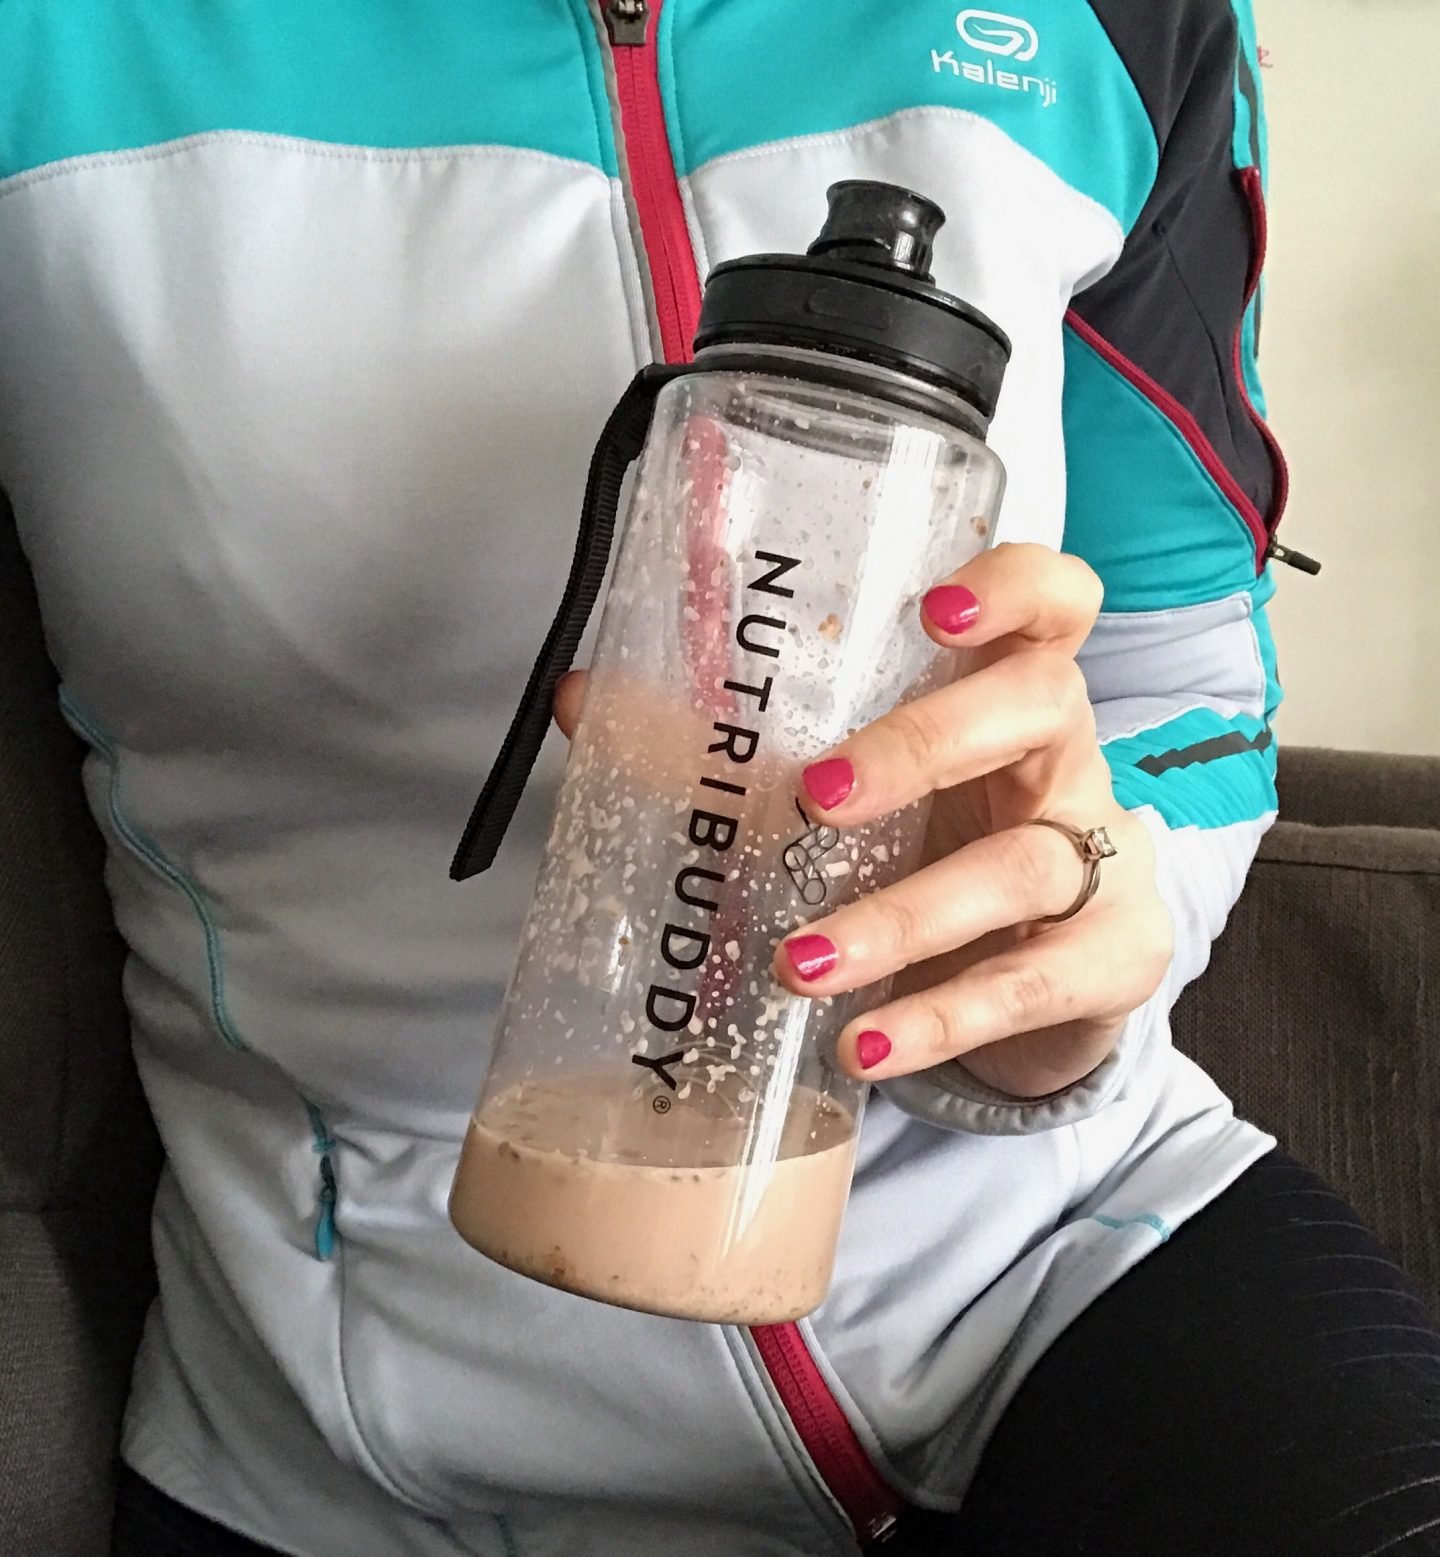 Nutribuddy Breakfast Shake Review